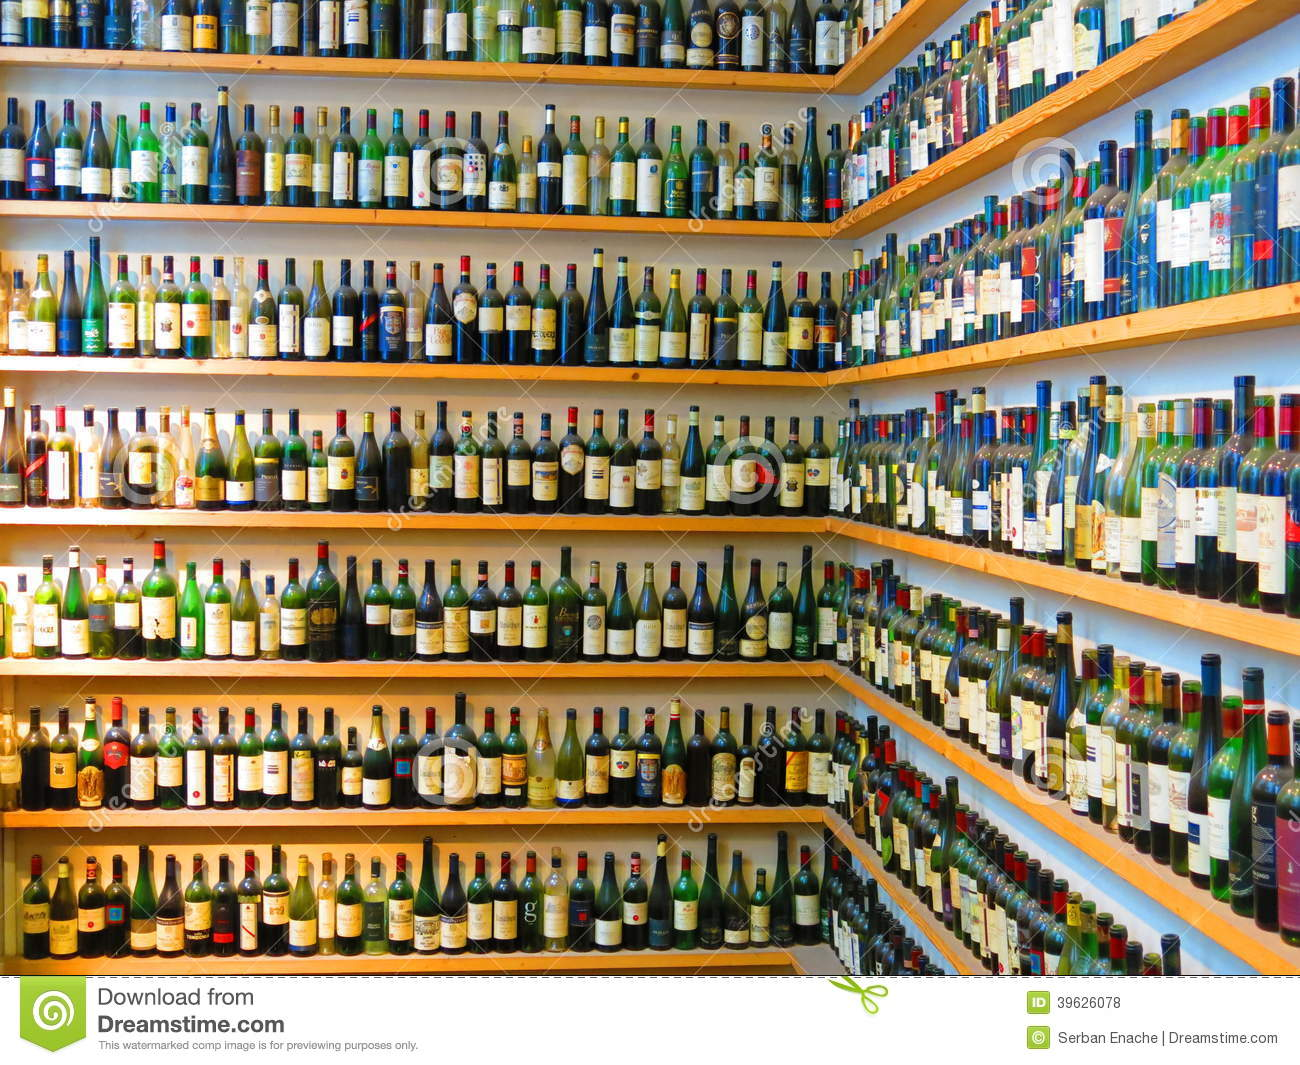 ... bottles lined up on two walls of shelves that meet at a right angle